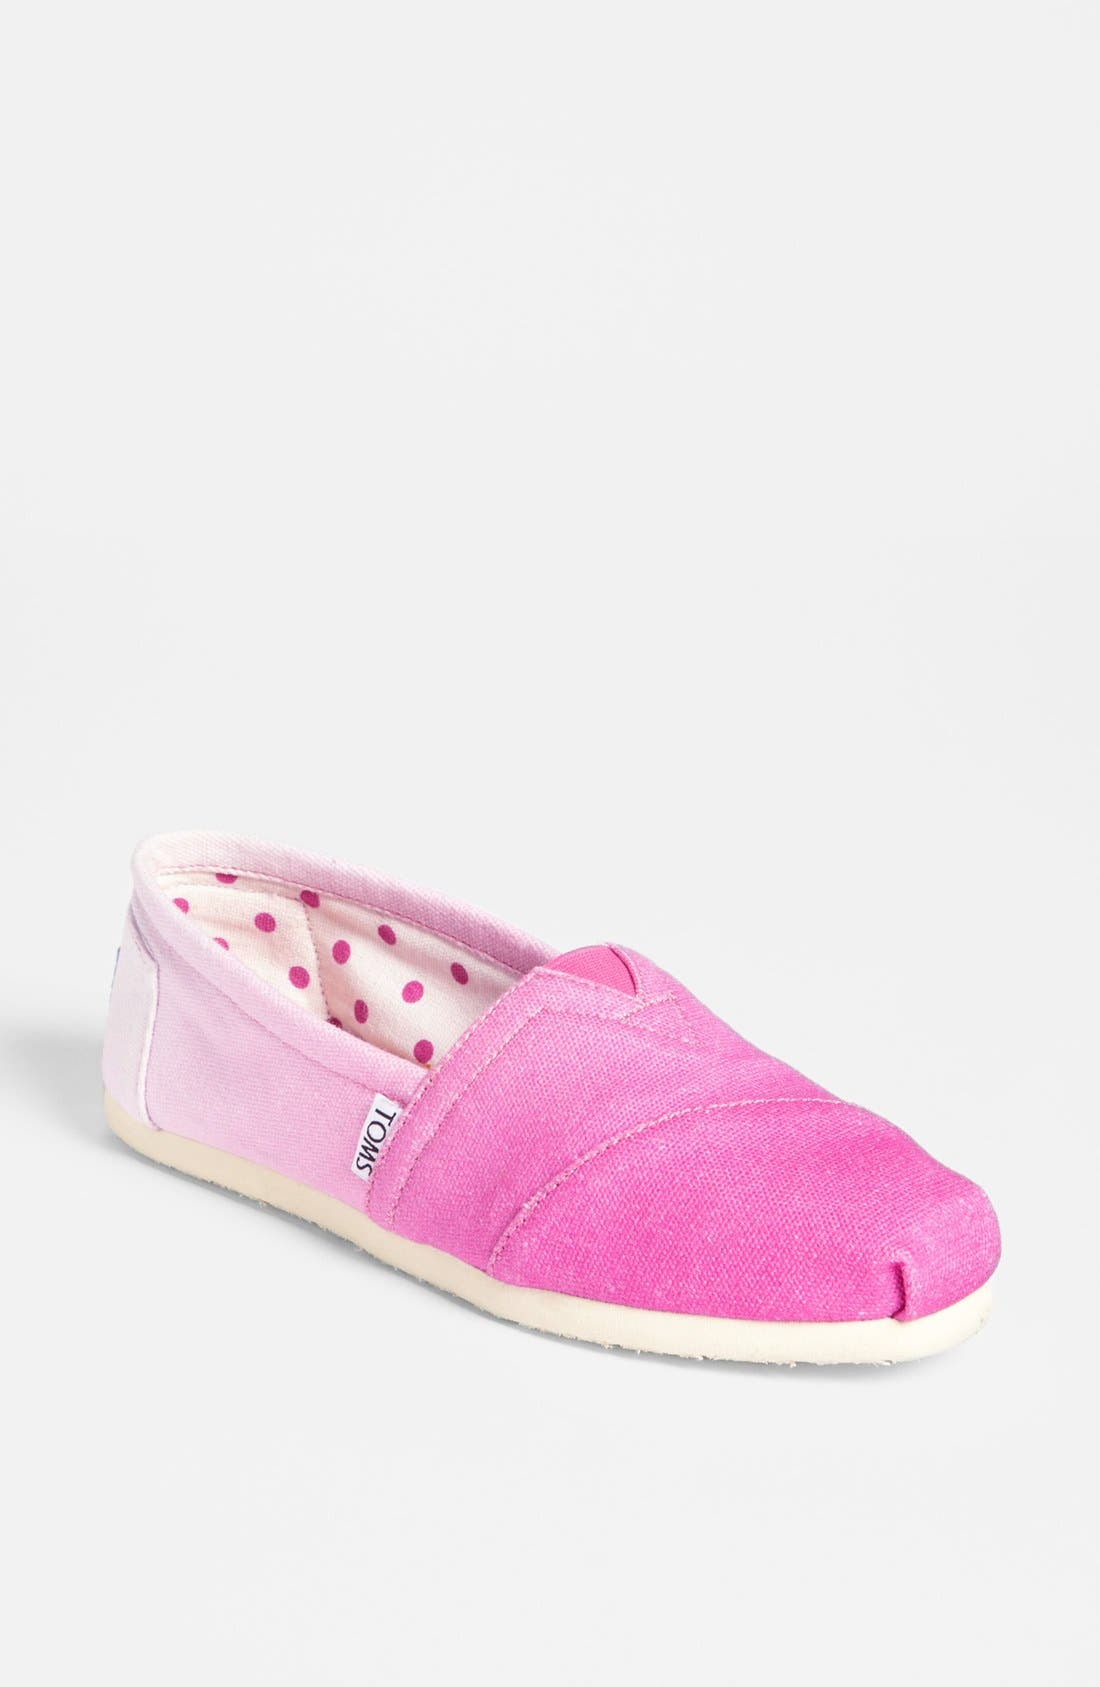 Main Image - TOMS 'Classic - Pink Ombré' Slip-On (Women) (Exclusive Color)